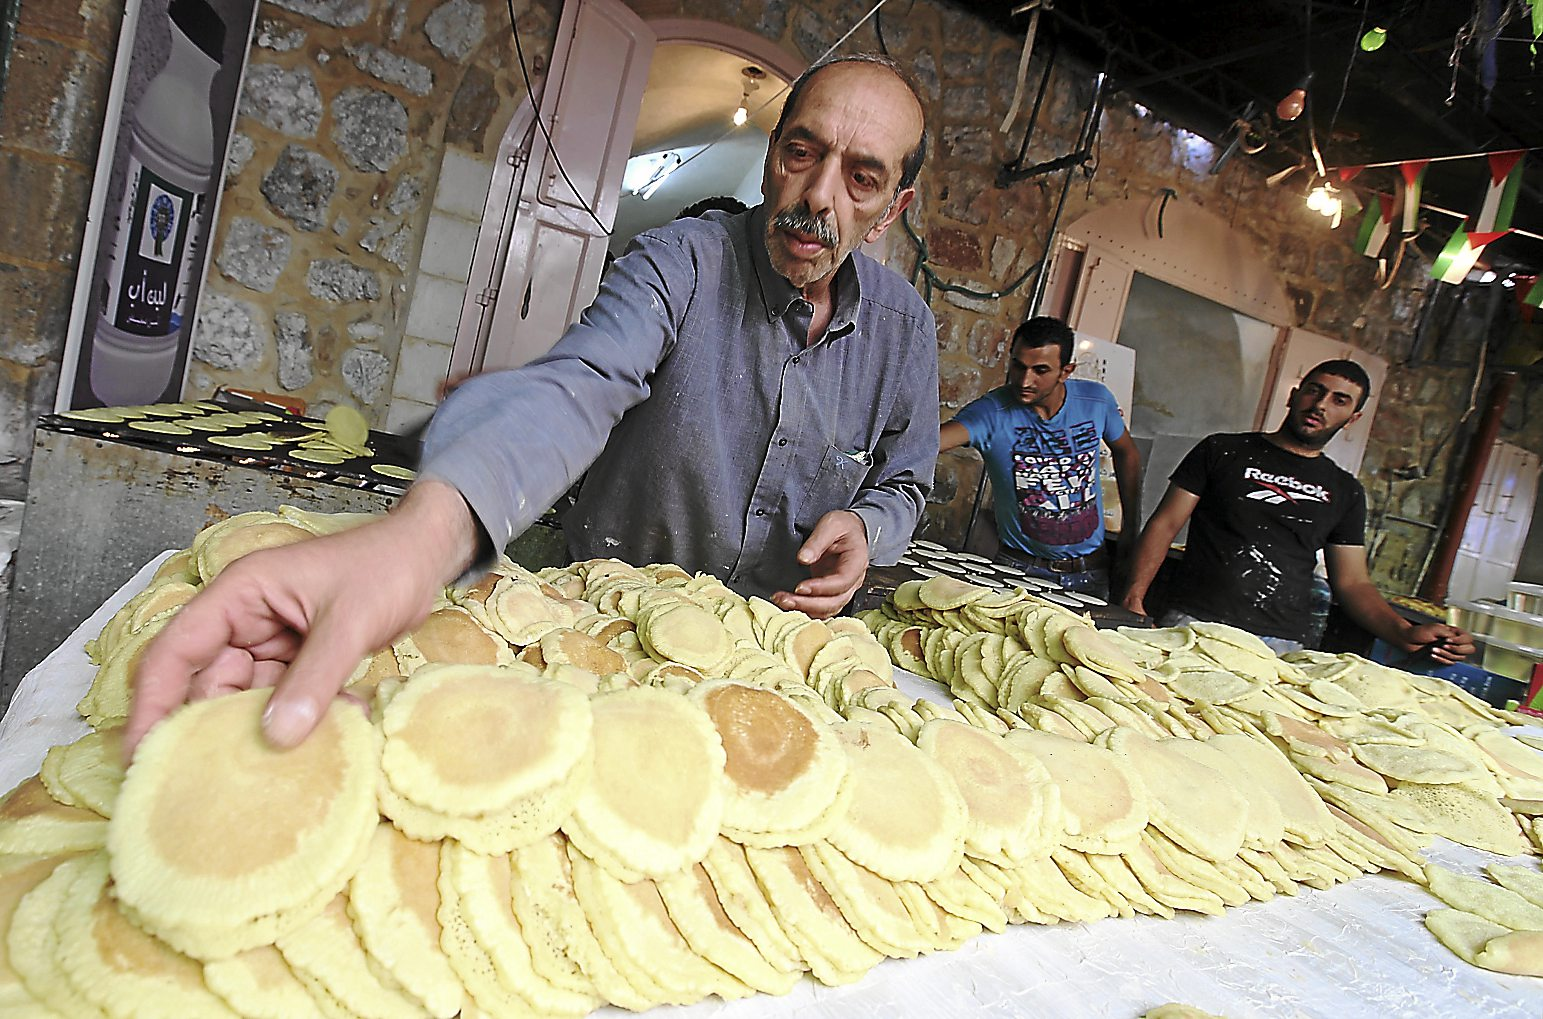 Palestinian bakers prepare traditional Ramadan pancakes called Qataiyef, or Katayef, in the Old City in the West Bank town of Hebron. The sweet is filled with cream or cheese and nuts. - EPA